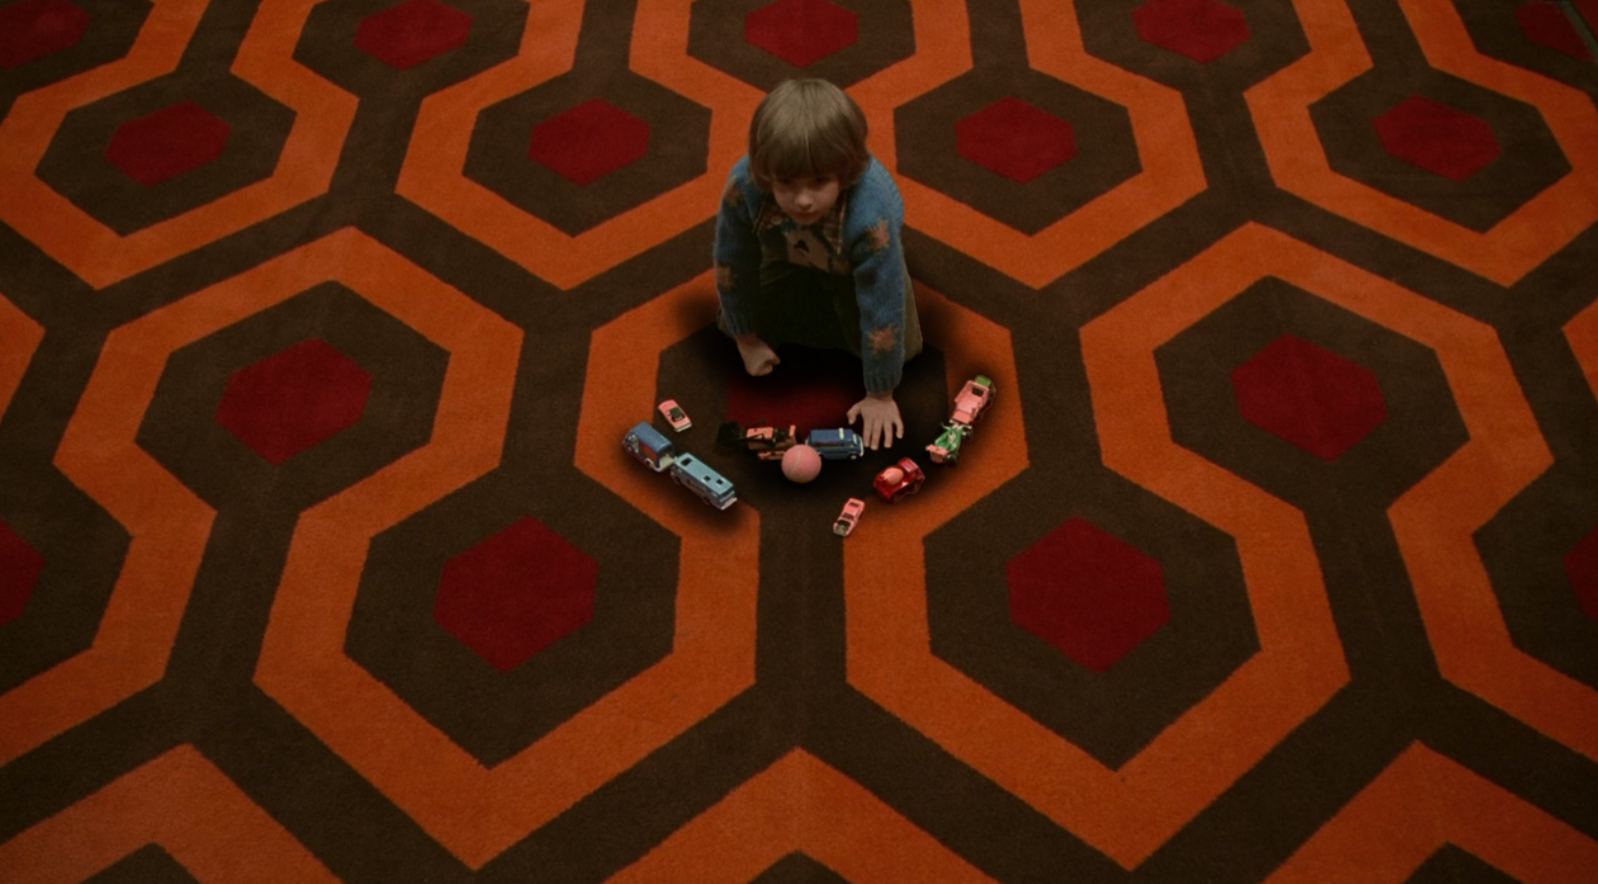 Danny is enmeshed into the pattern of the rug at The Overlook